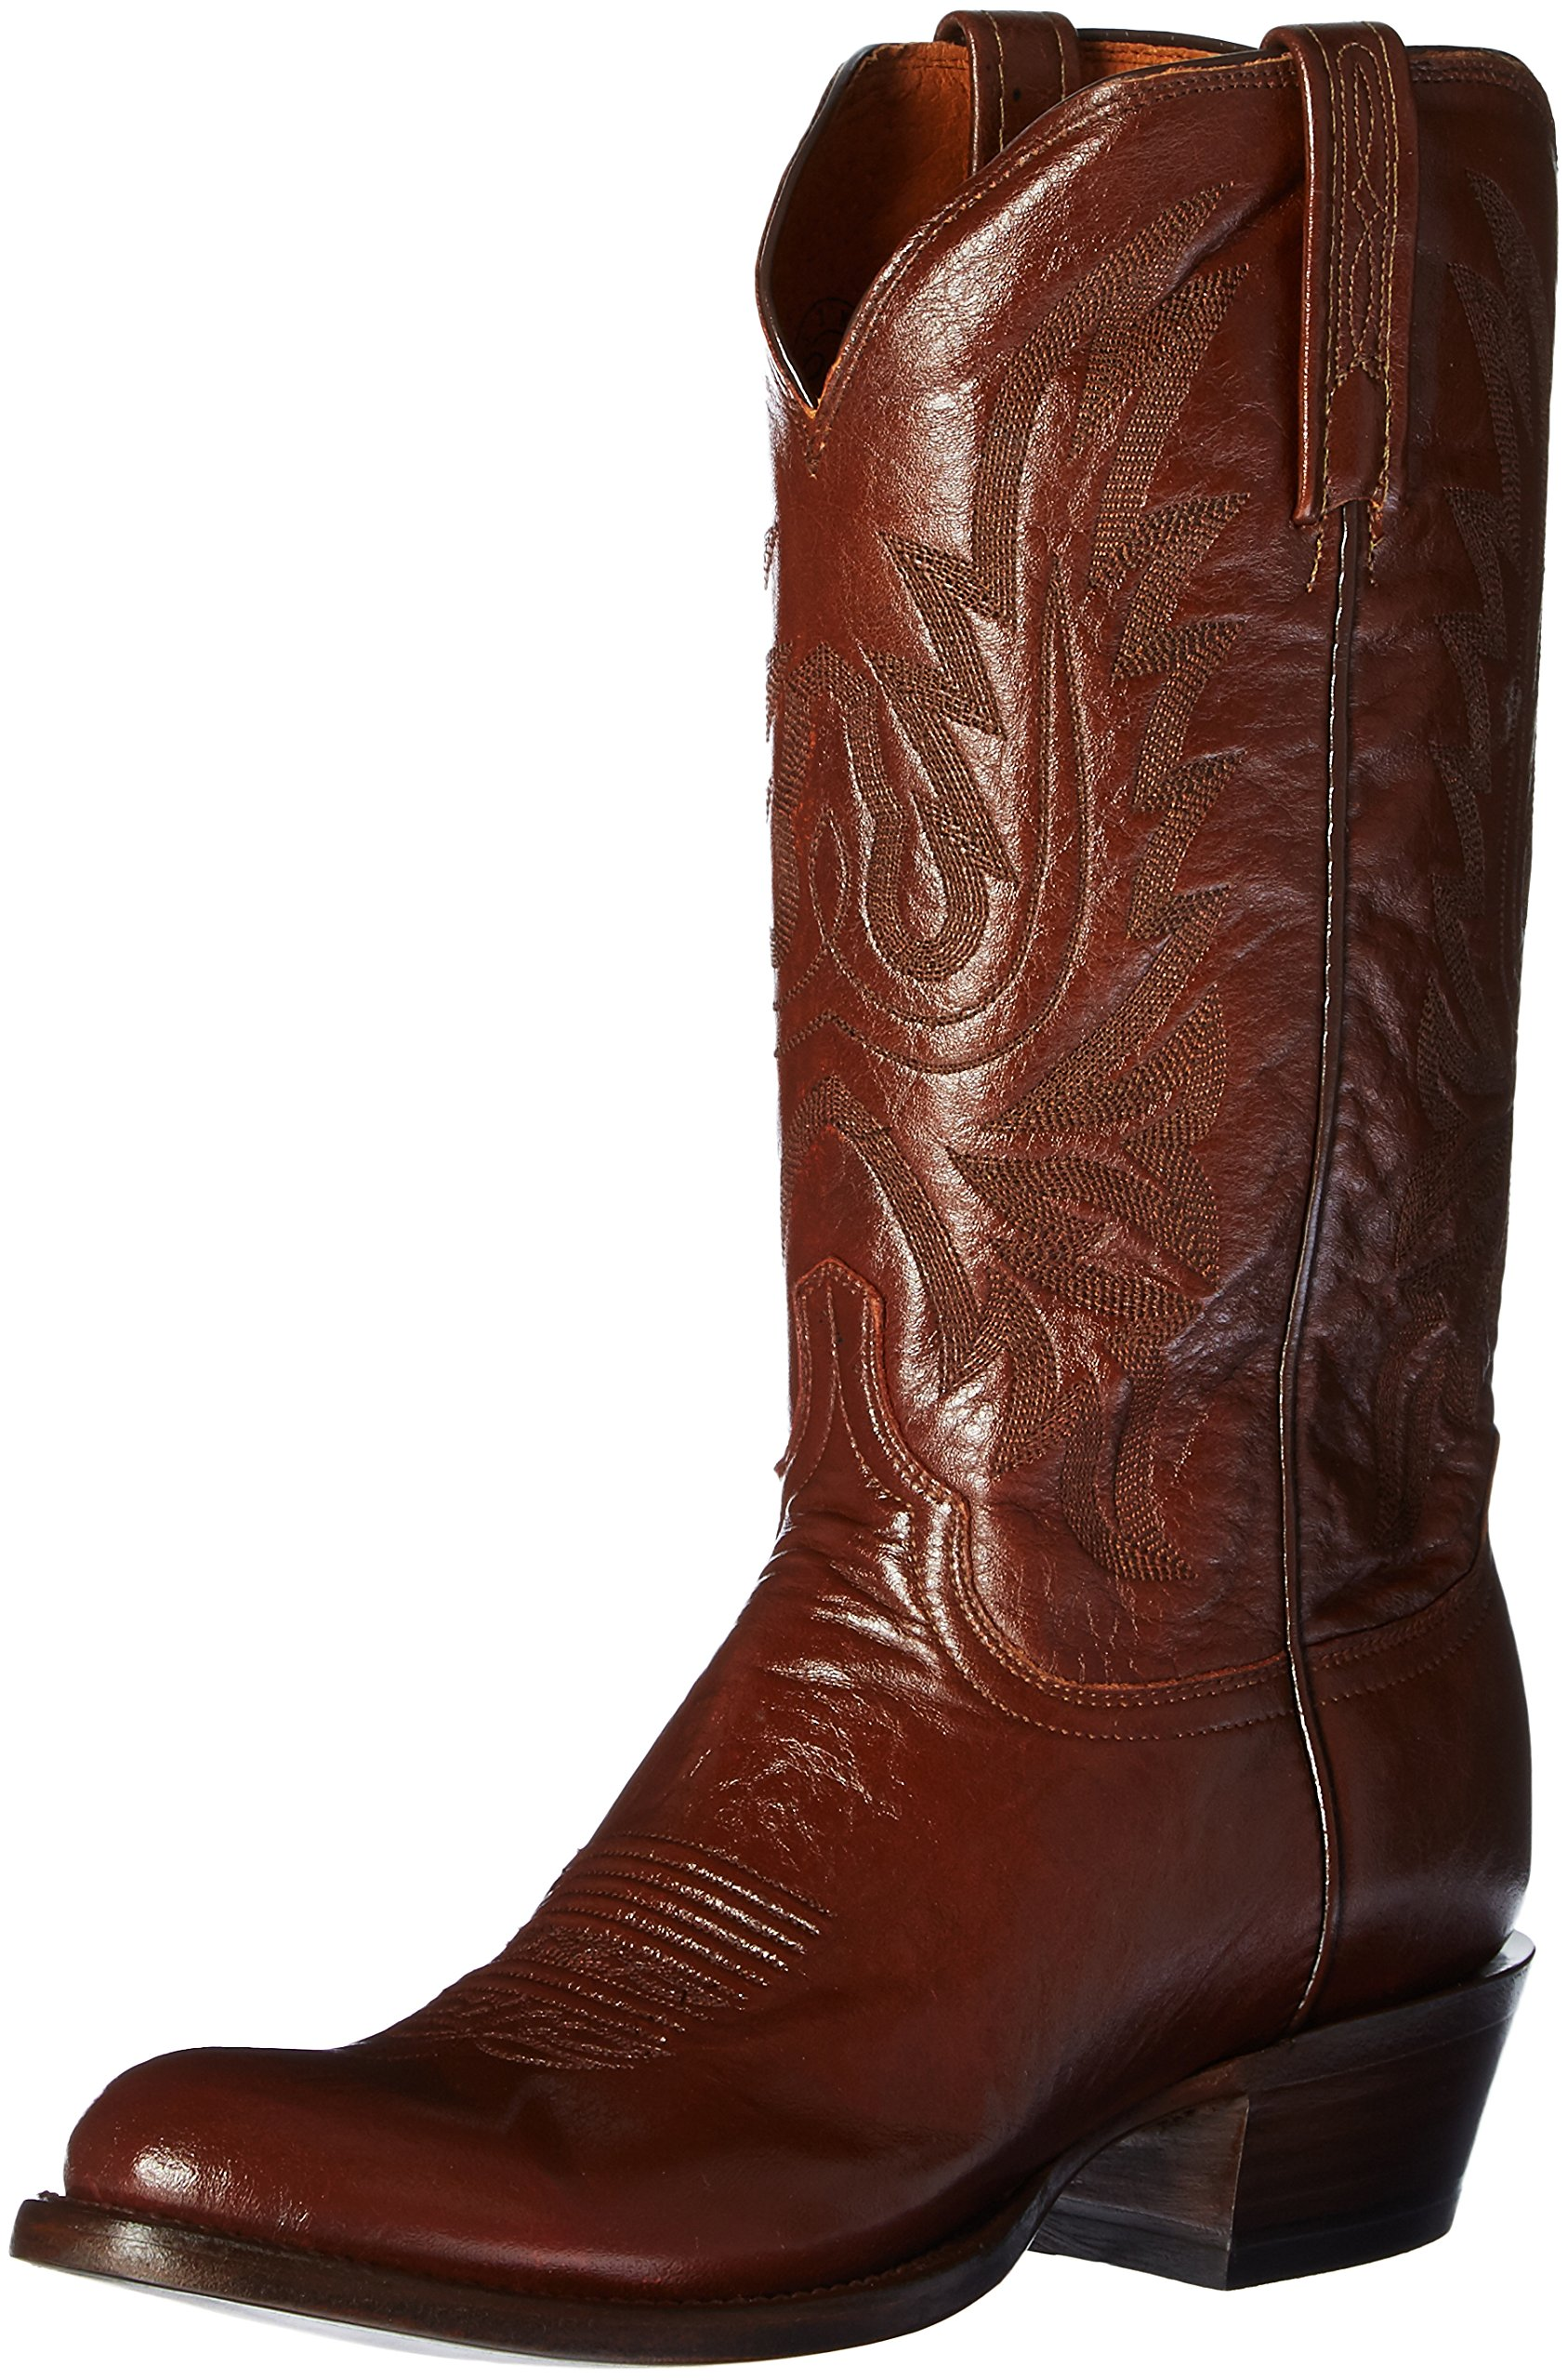 Lucchese Bootmaker Men's Carson-Ant Bn Lonestar Calf Cowboy Riding Boot, Antique Brown, 10 D US by Lucchese Bootmaker